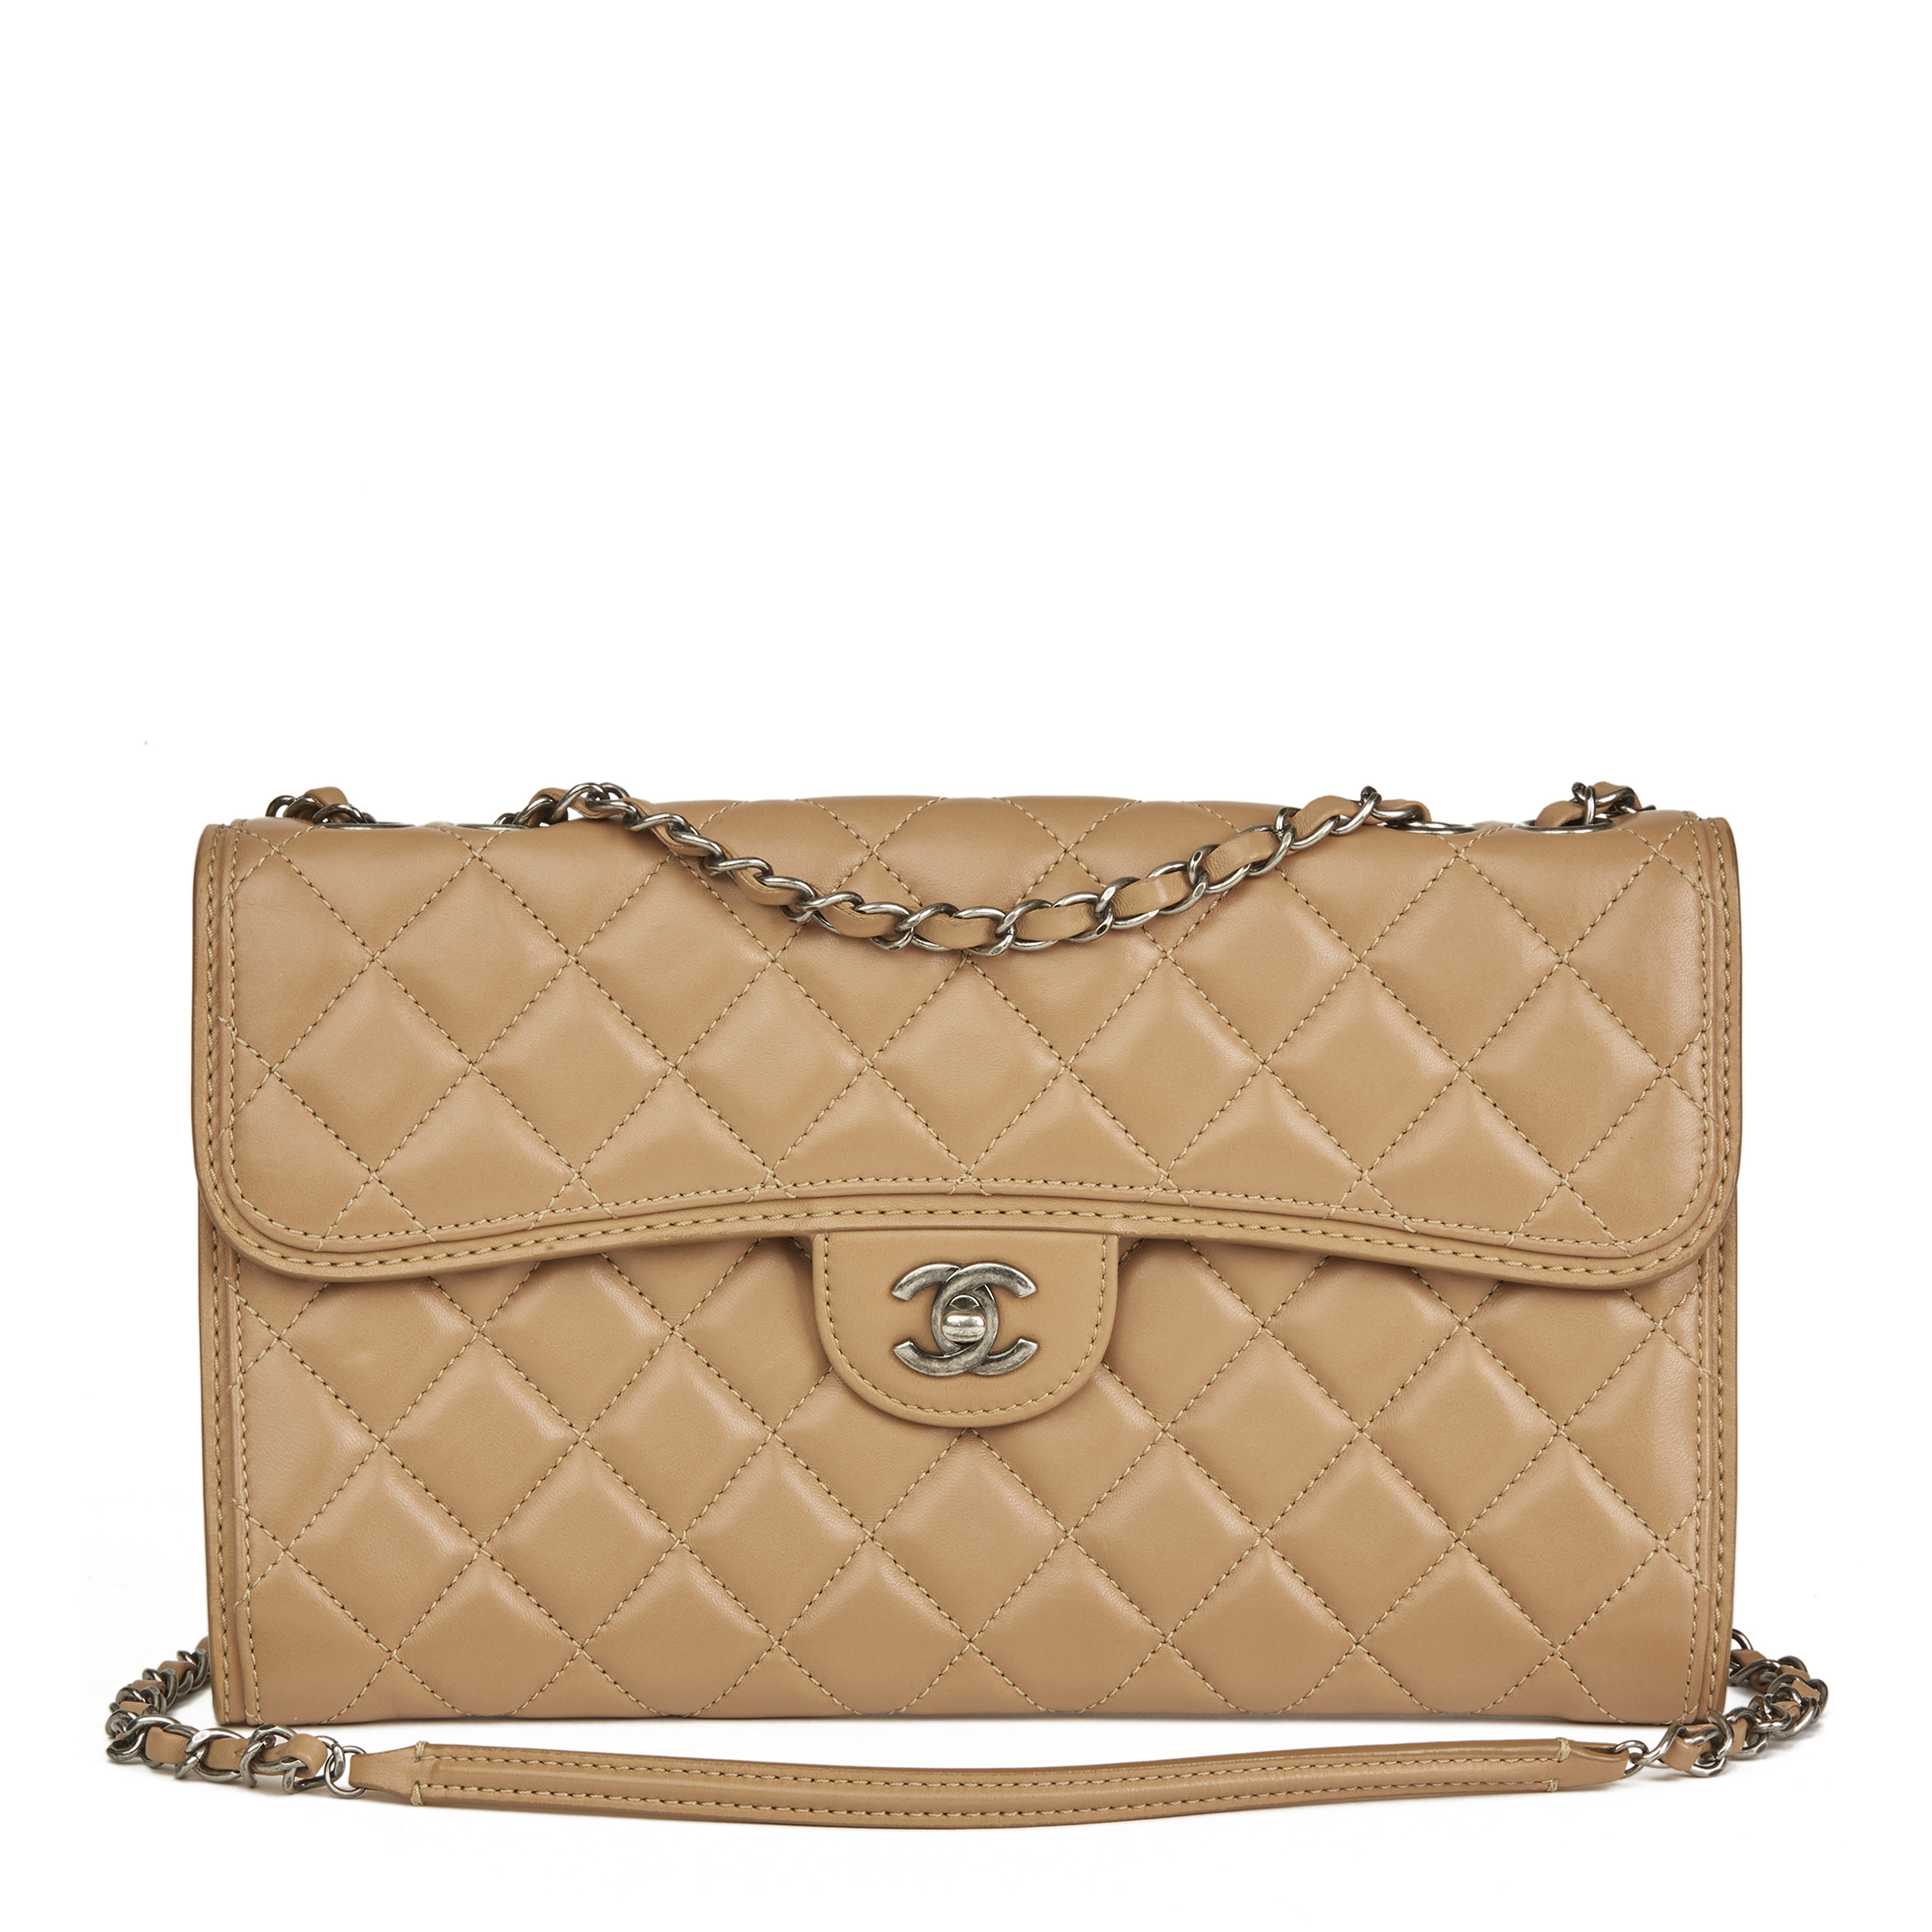 a8723aa8929a Image is loading CHANEL-MOCHA-QUILTED-LAMBSKIN-CLASSIC-SINGLE-FLAP-BAG-